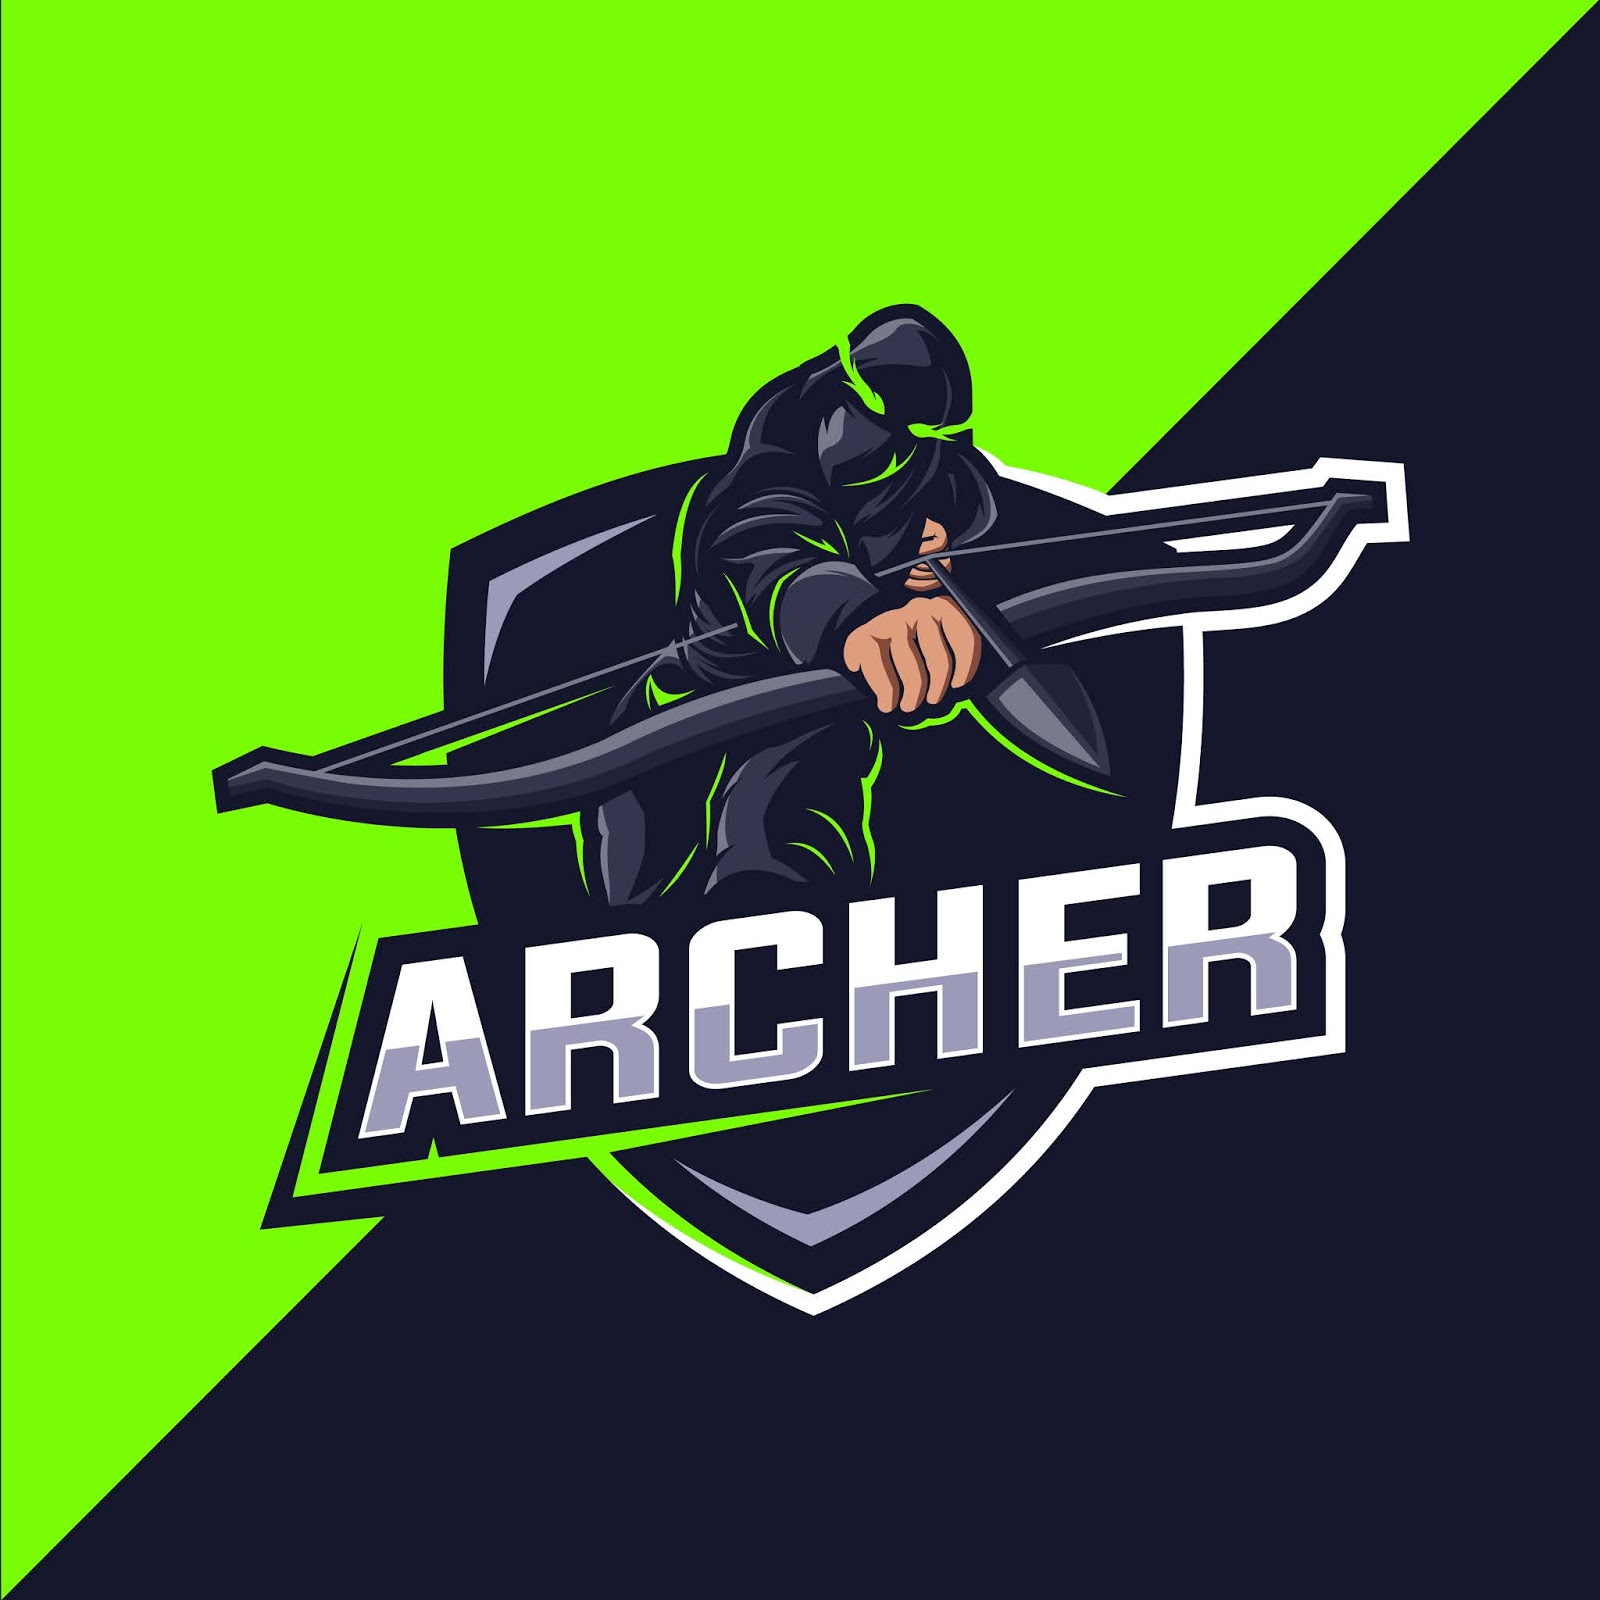 Archer Green Esport Mascot Logo Design Free Download Vector CDR, AI, EPS and PNG Formats